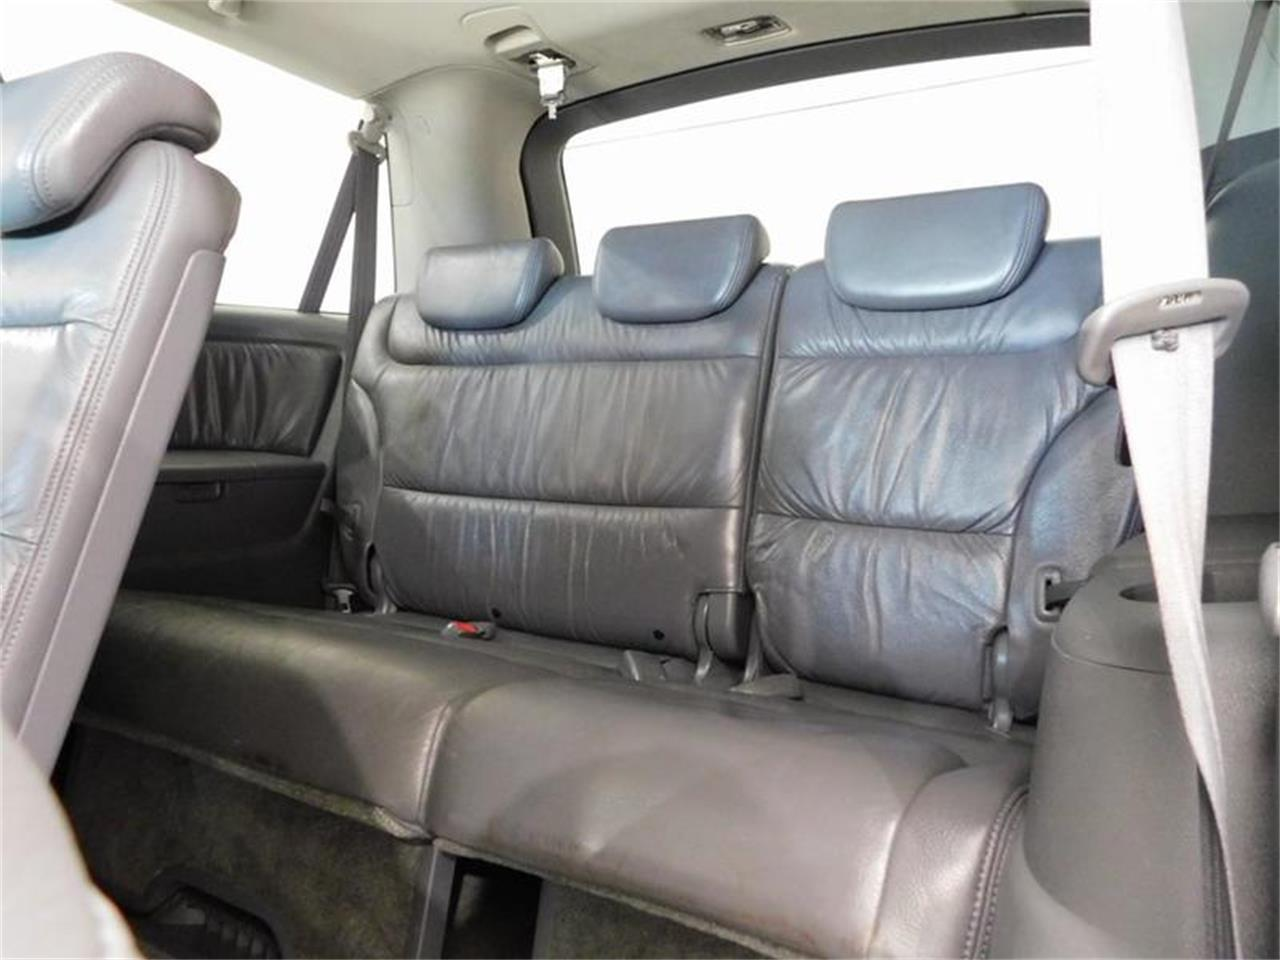 Large Picture of 2006 Honda Odyssey located in New York - $6,580.00 - QPN6